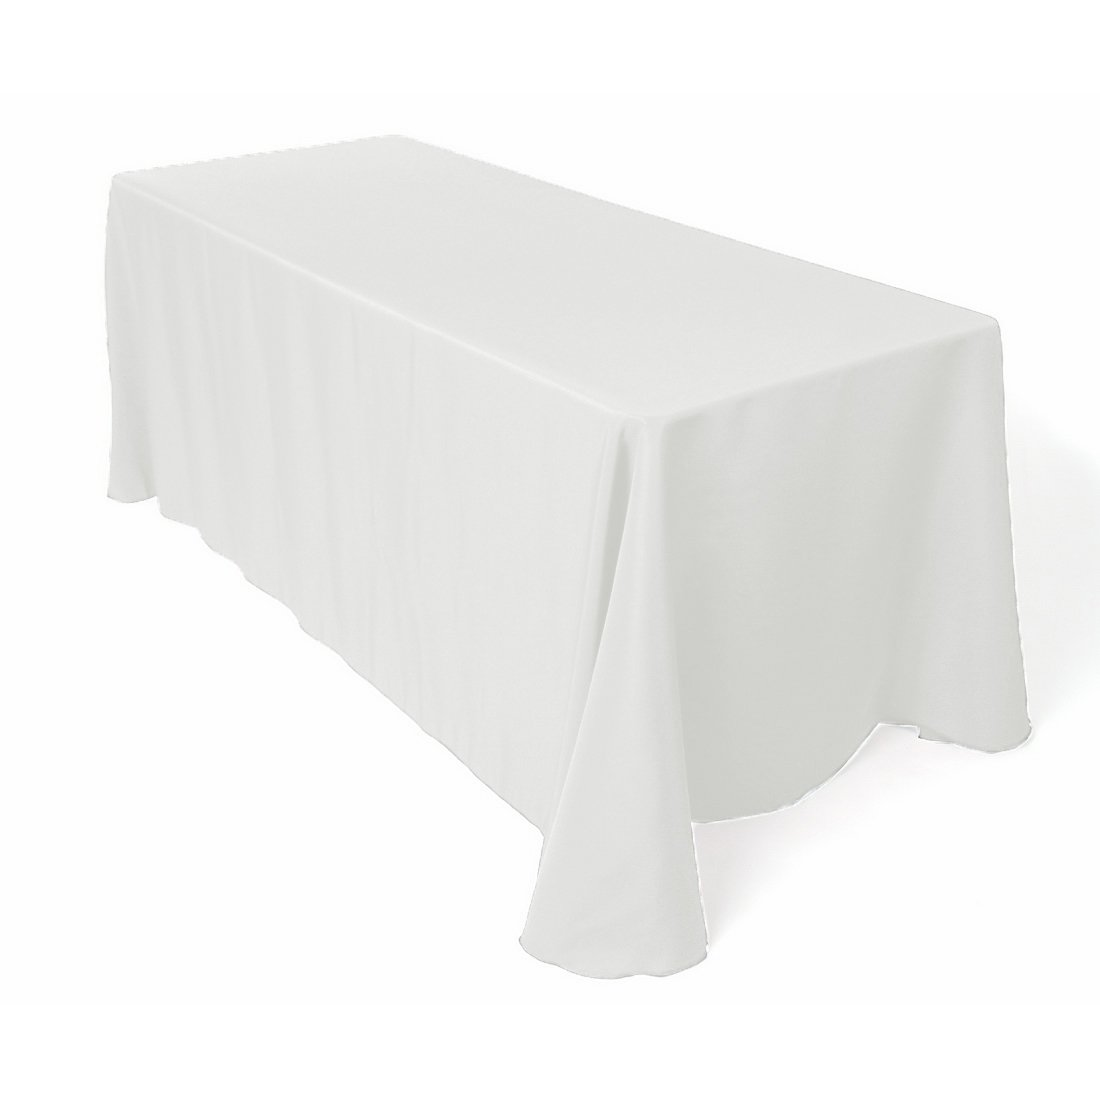 90 Tablecloth On 60 Round Table